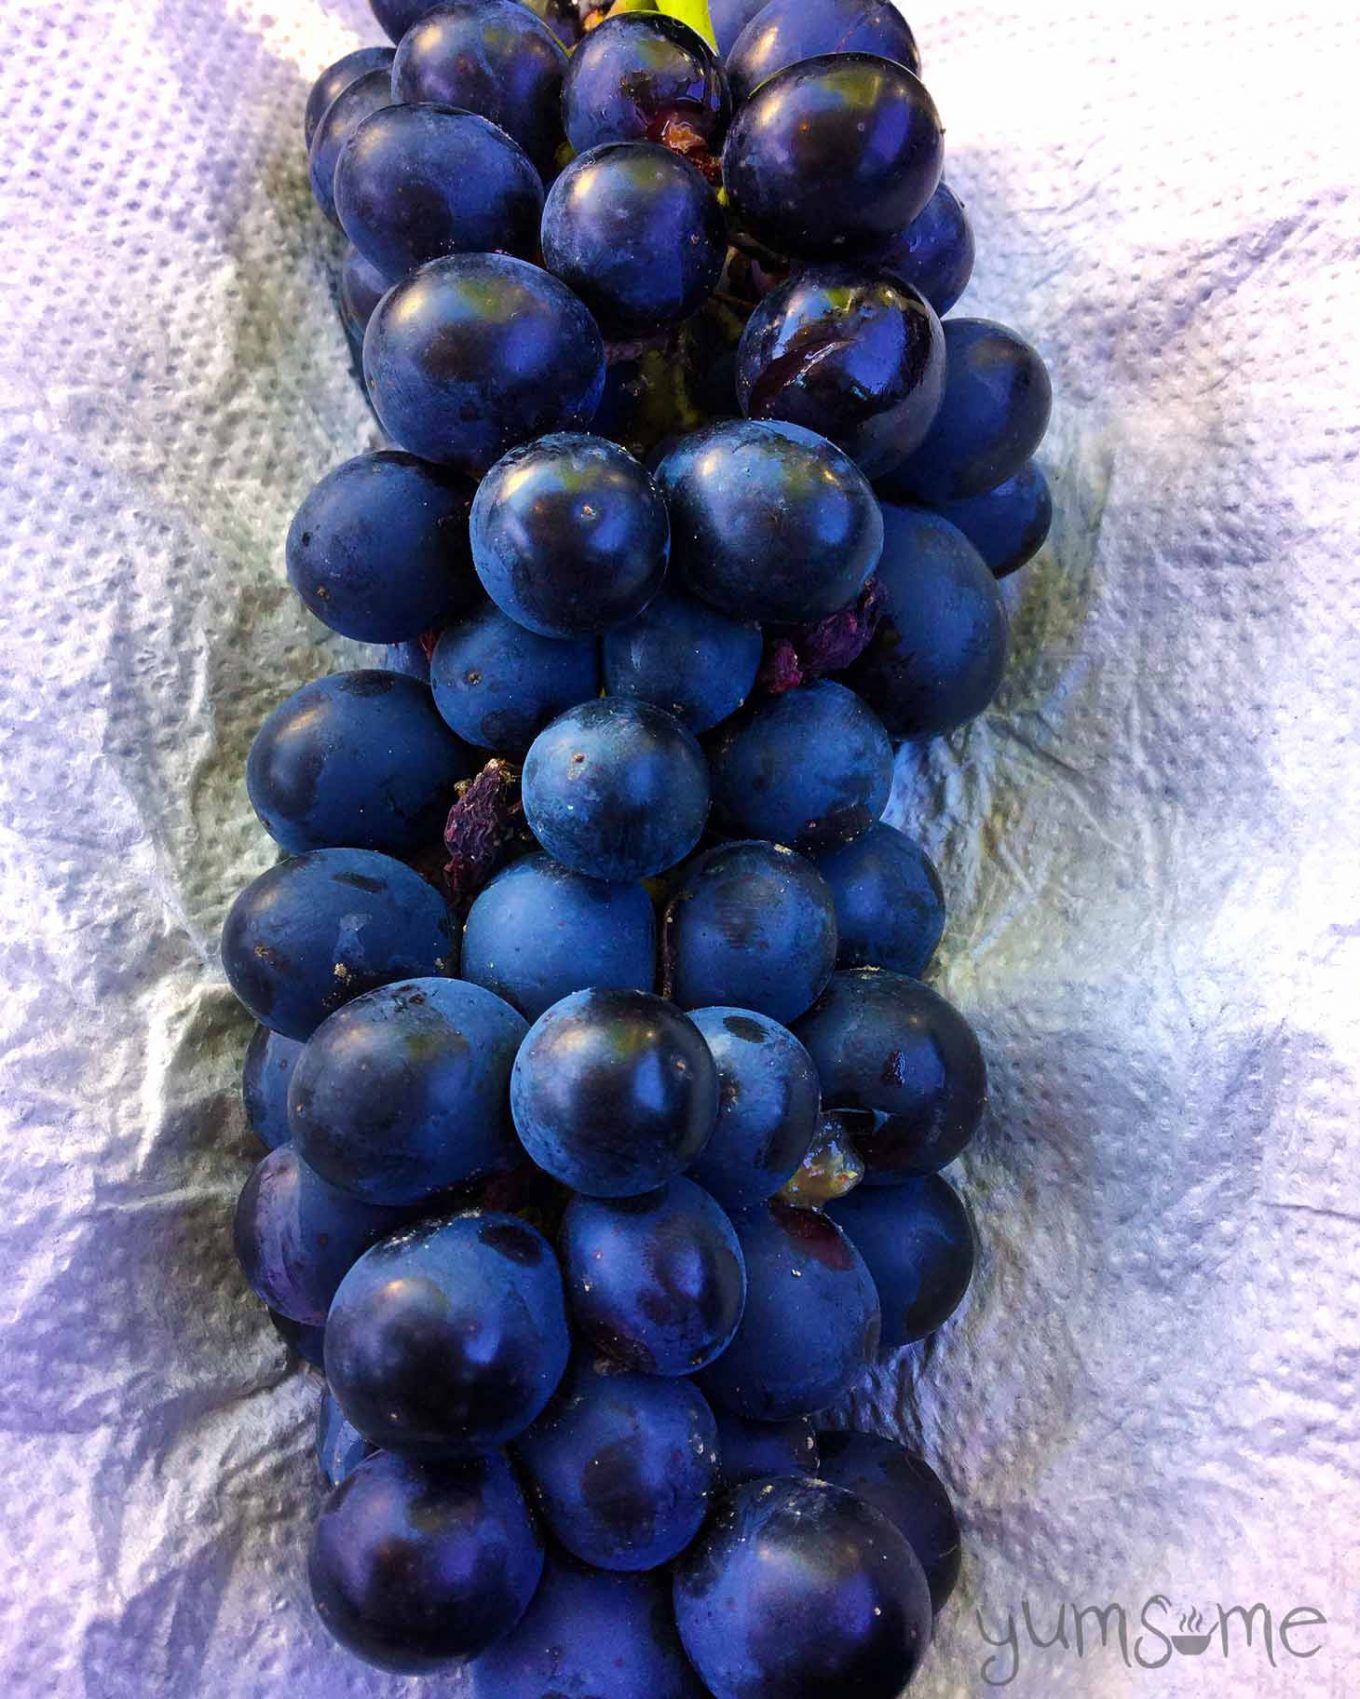 Yummy freshly-picked Romanian grapes | yumsome.com